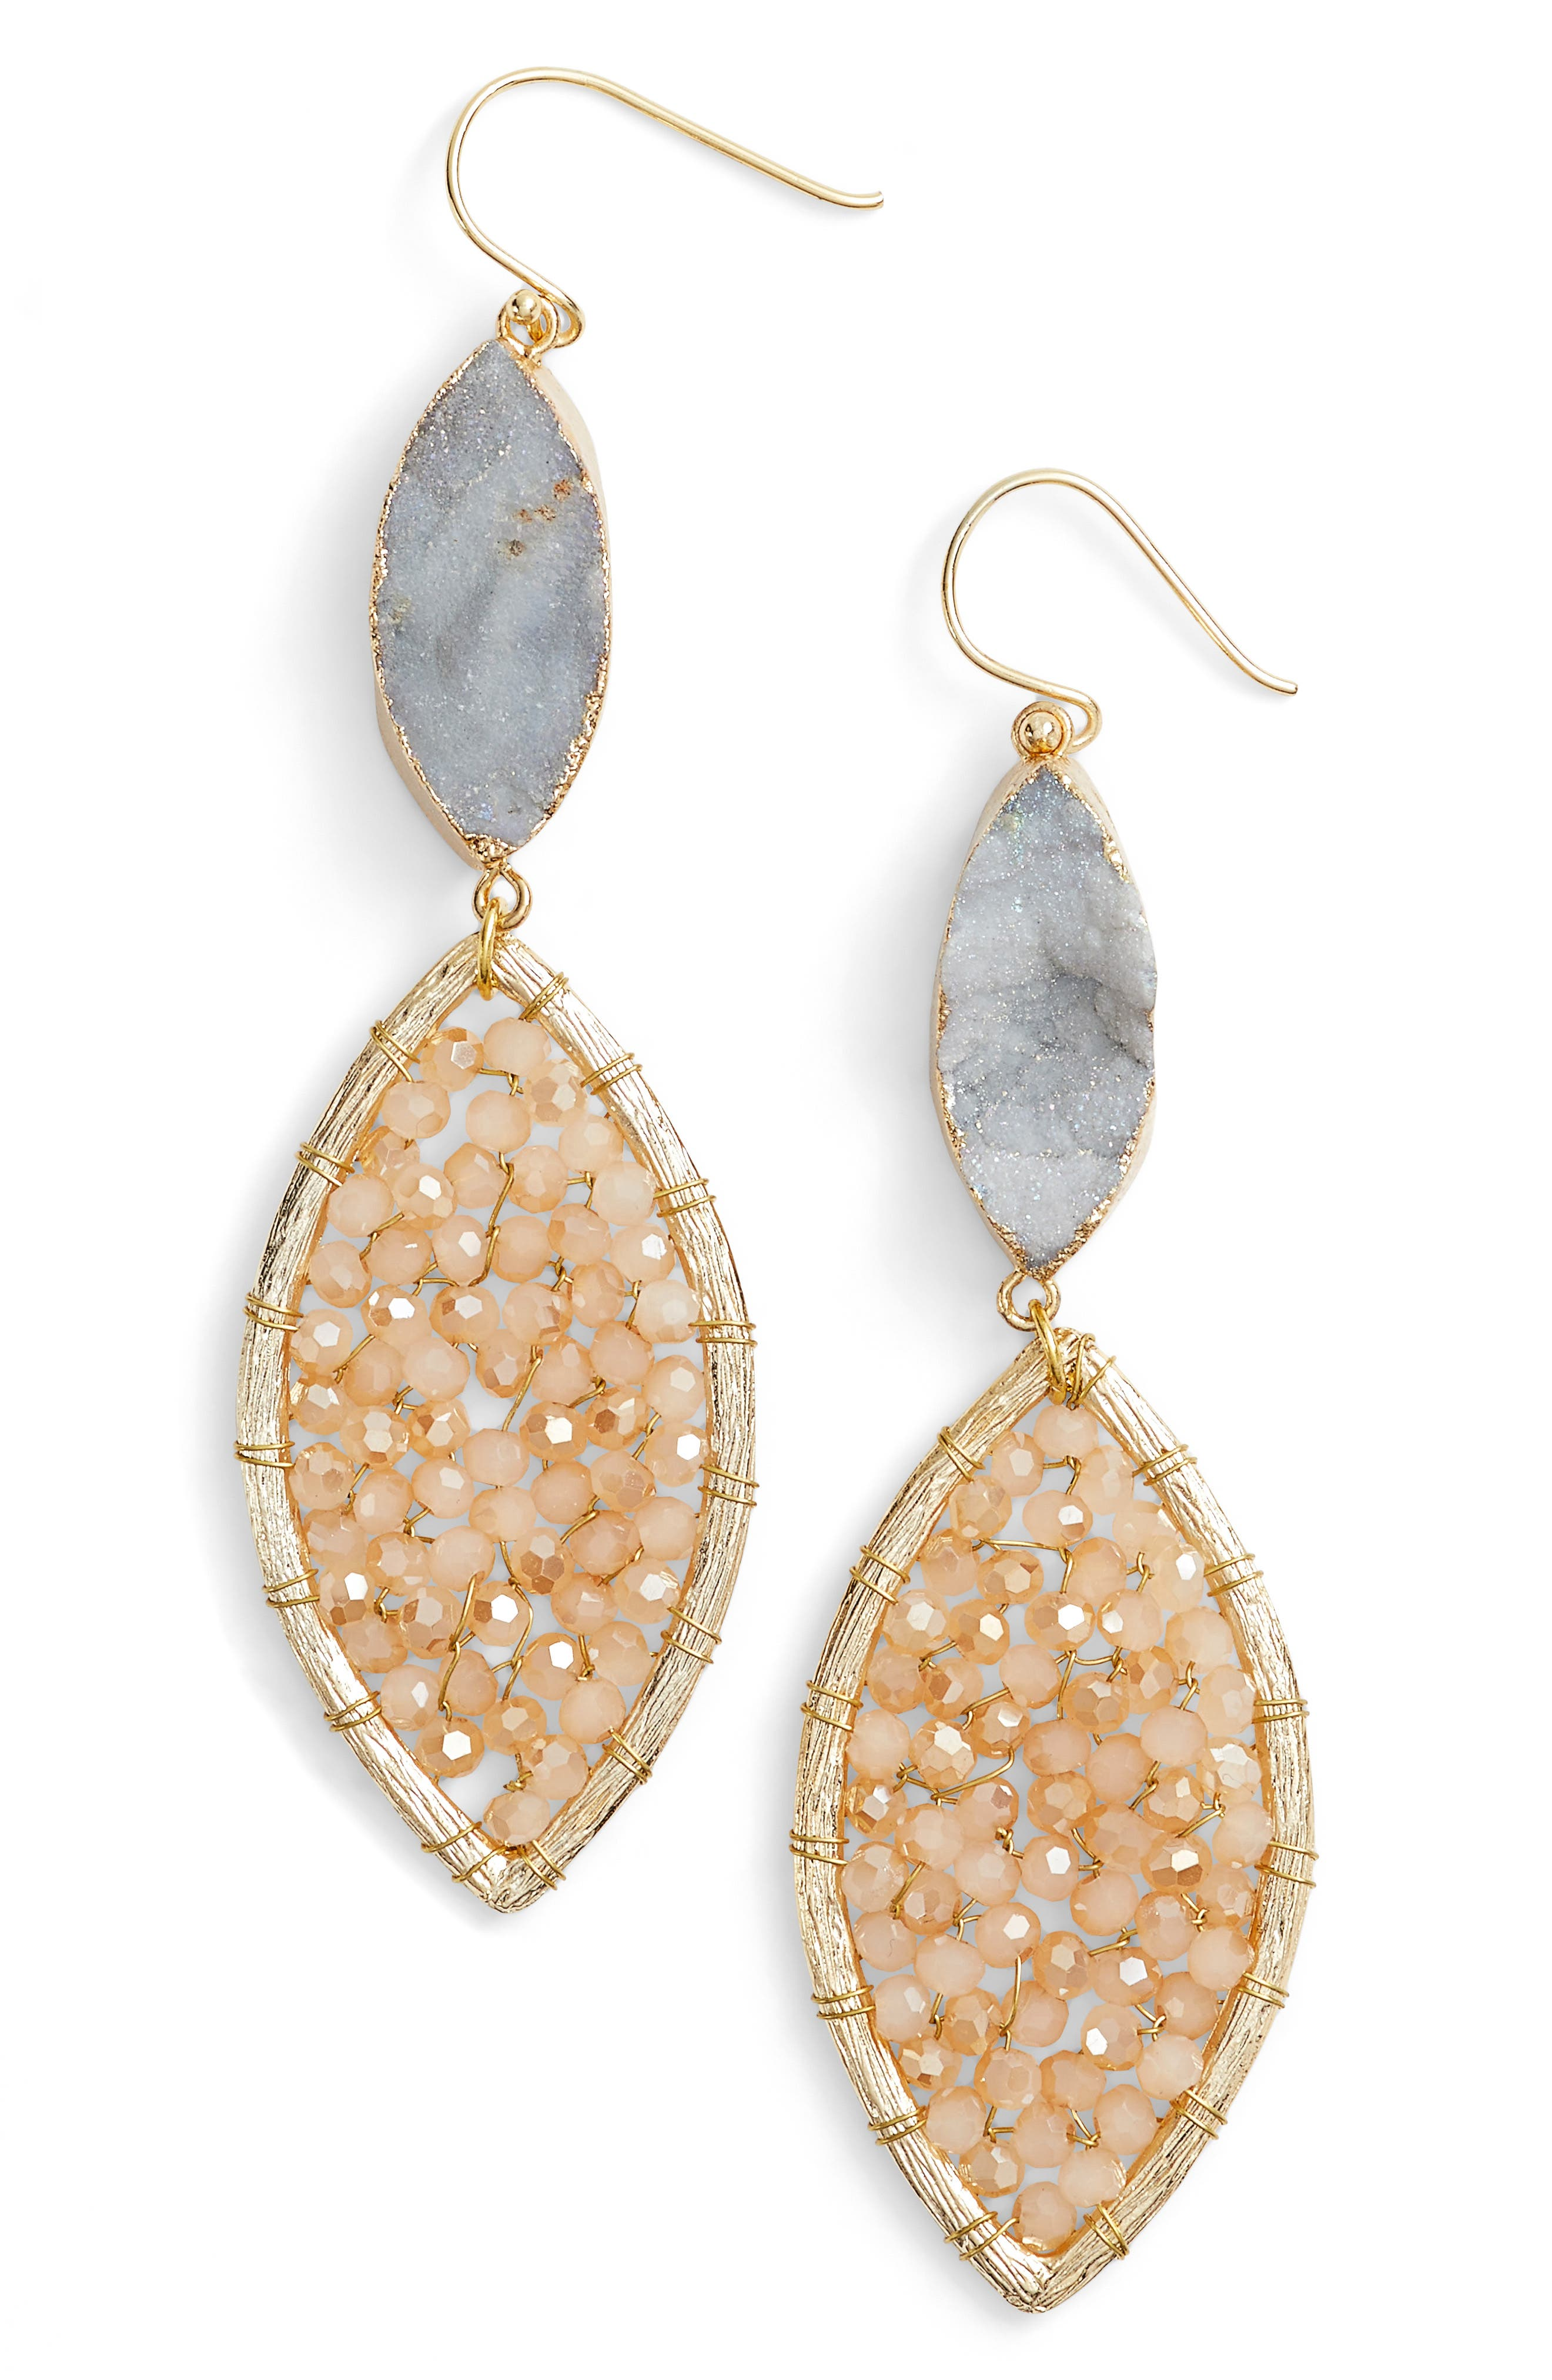 Panacea Sunstone Crystal Earrings